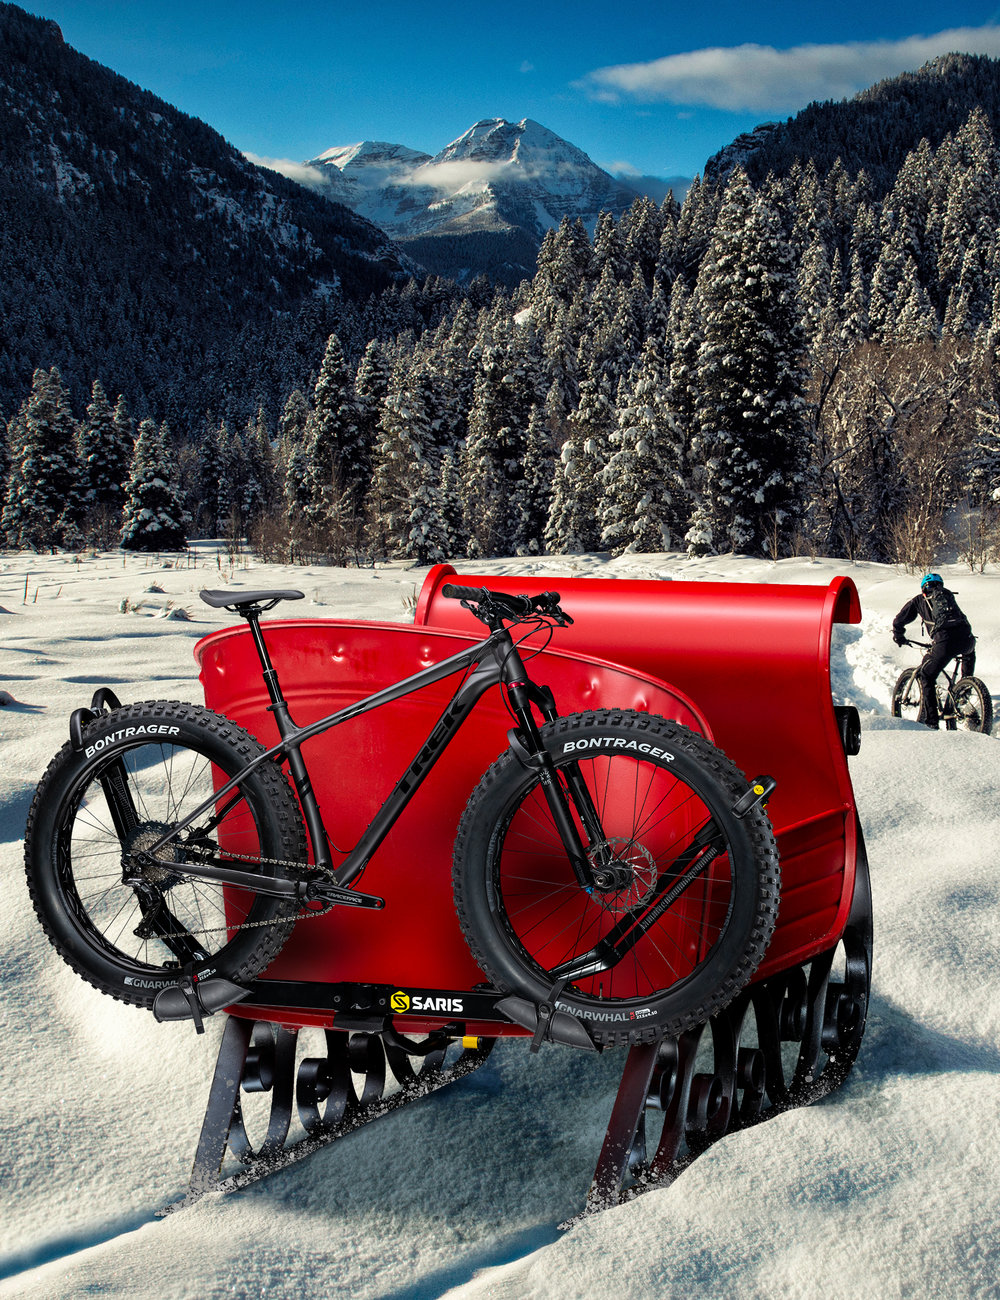 Santa's Bike Shop - Kids and Adult bikes from Santa in stock now